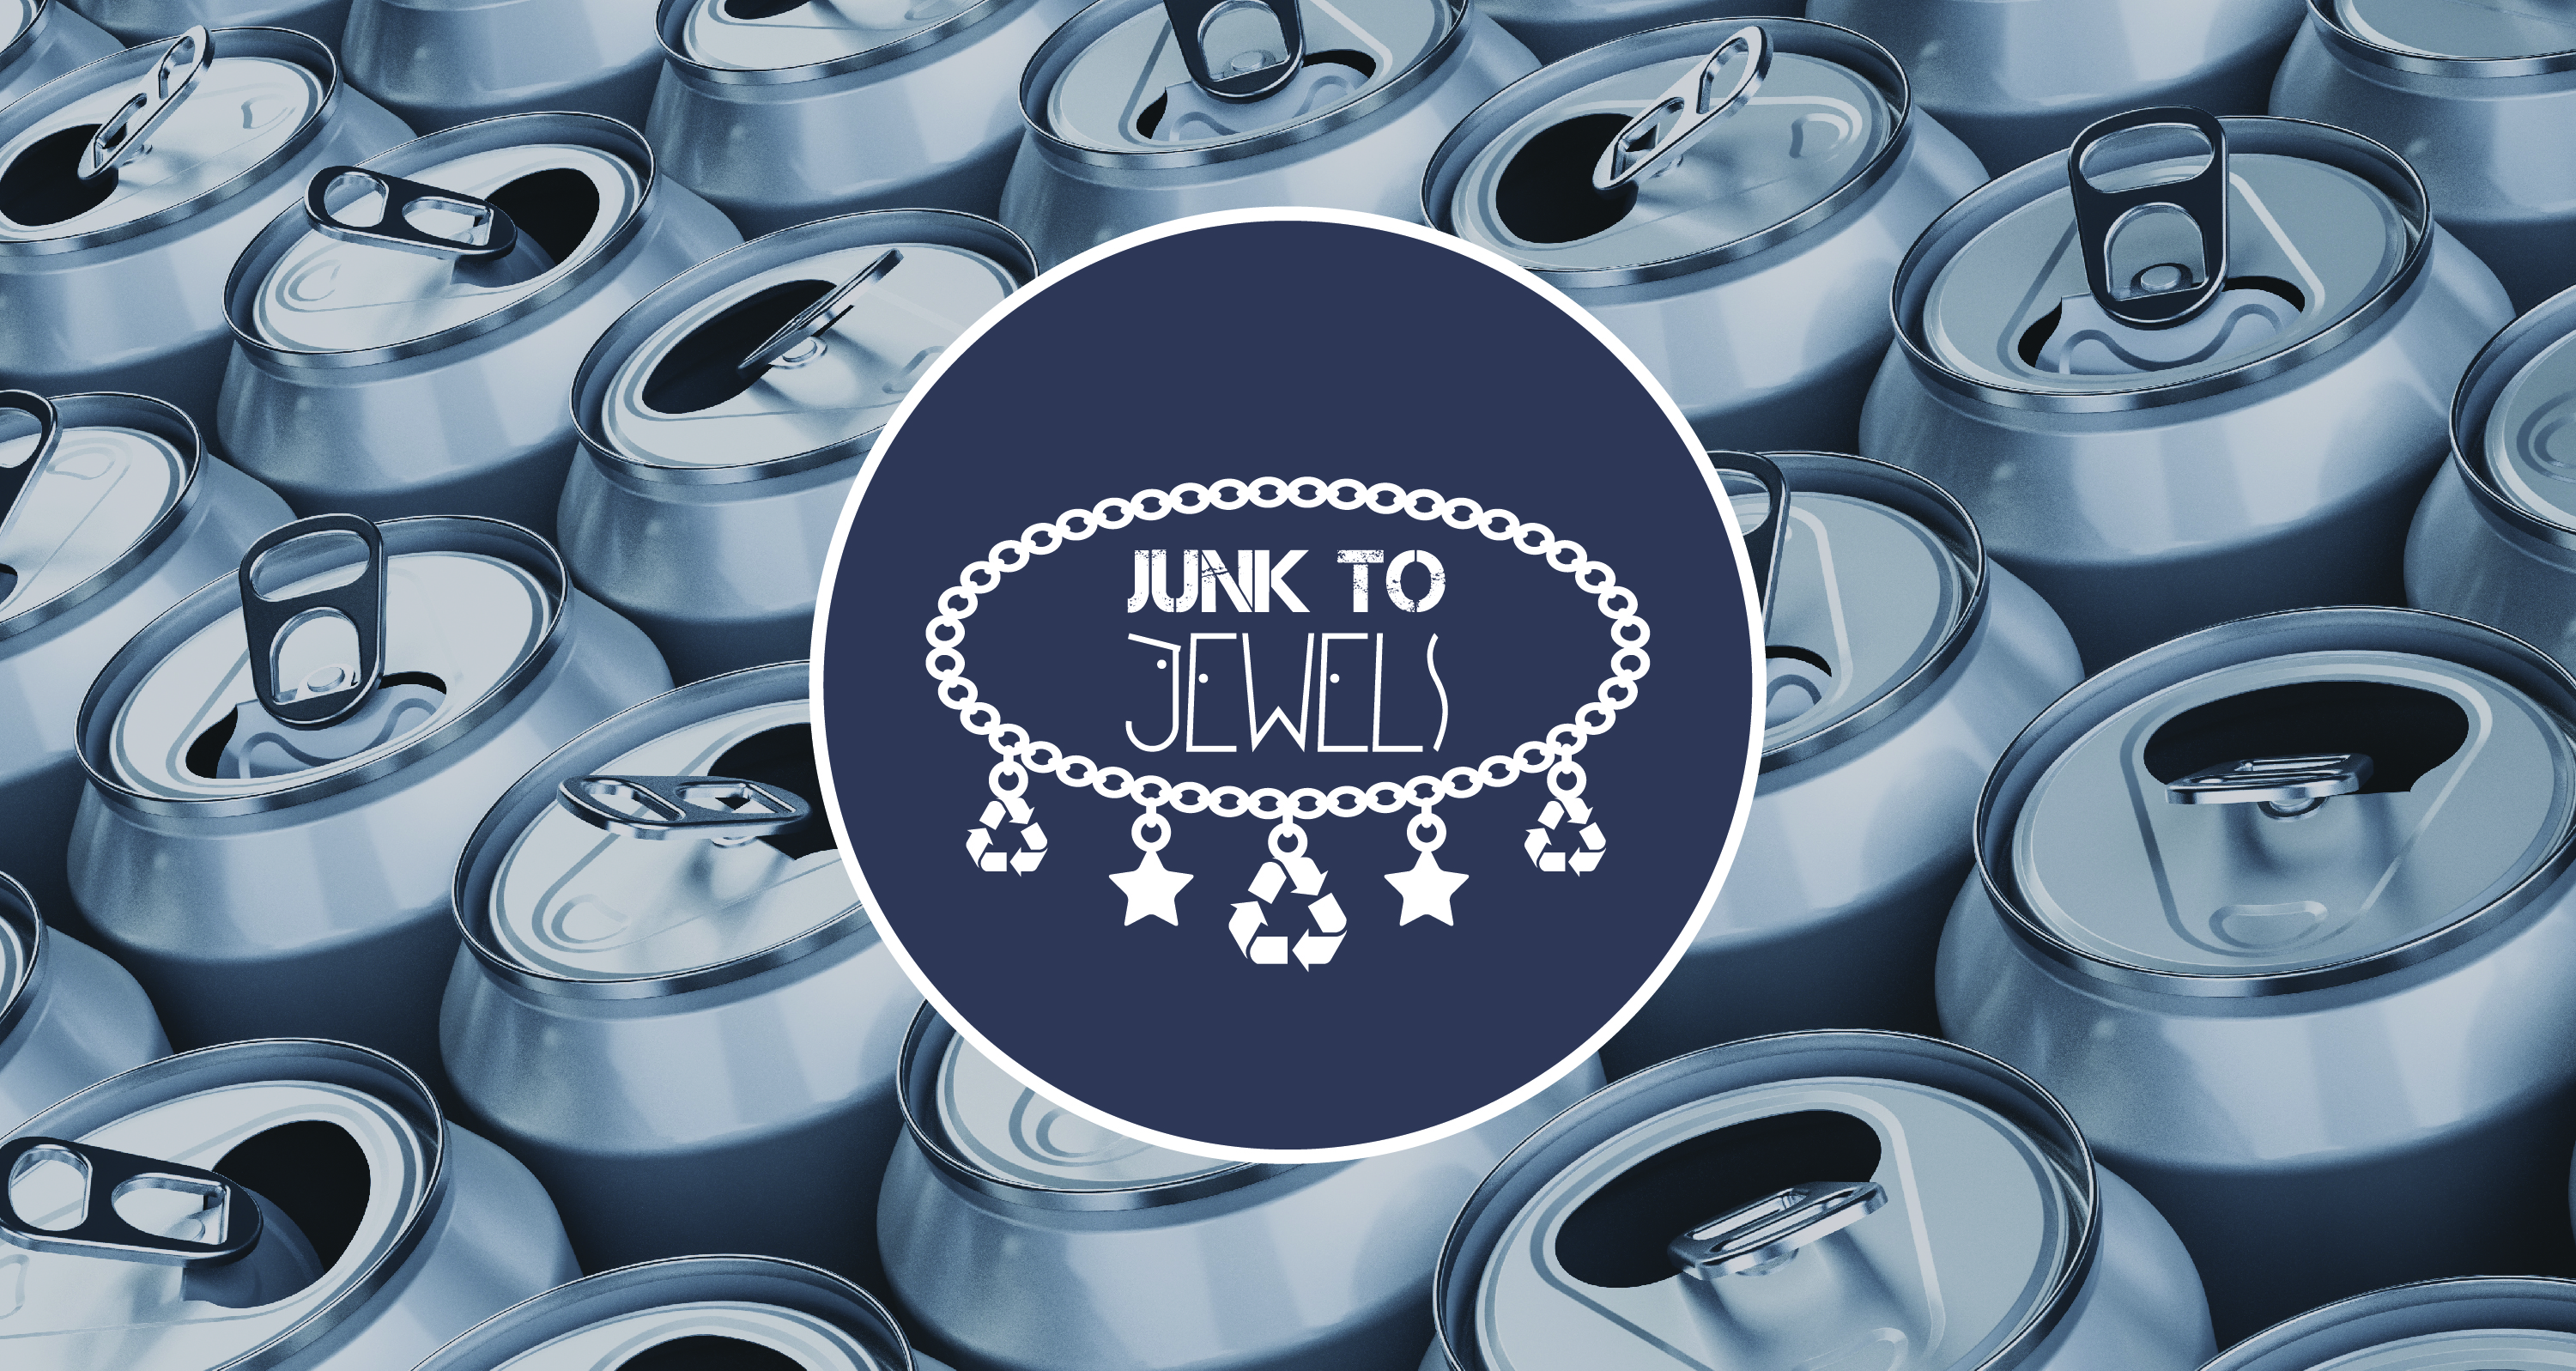 Junk to Jewels Image